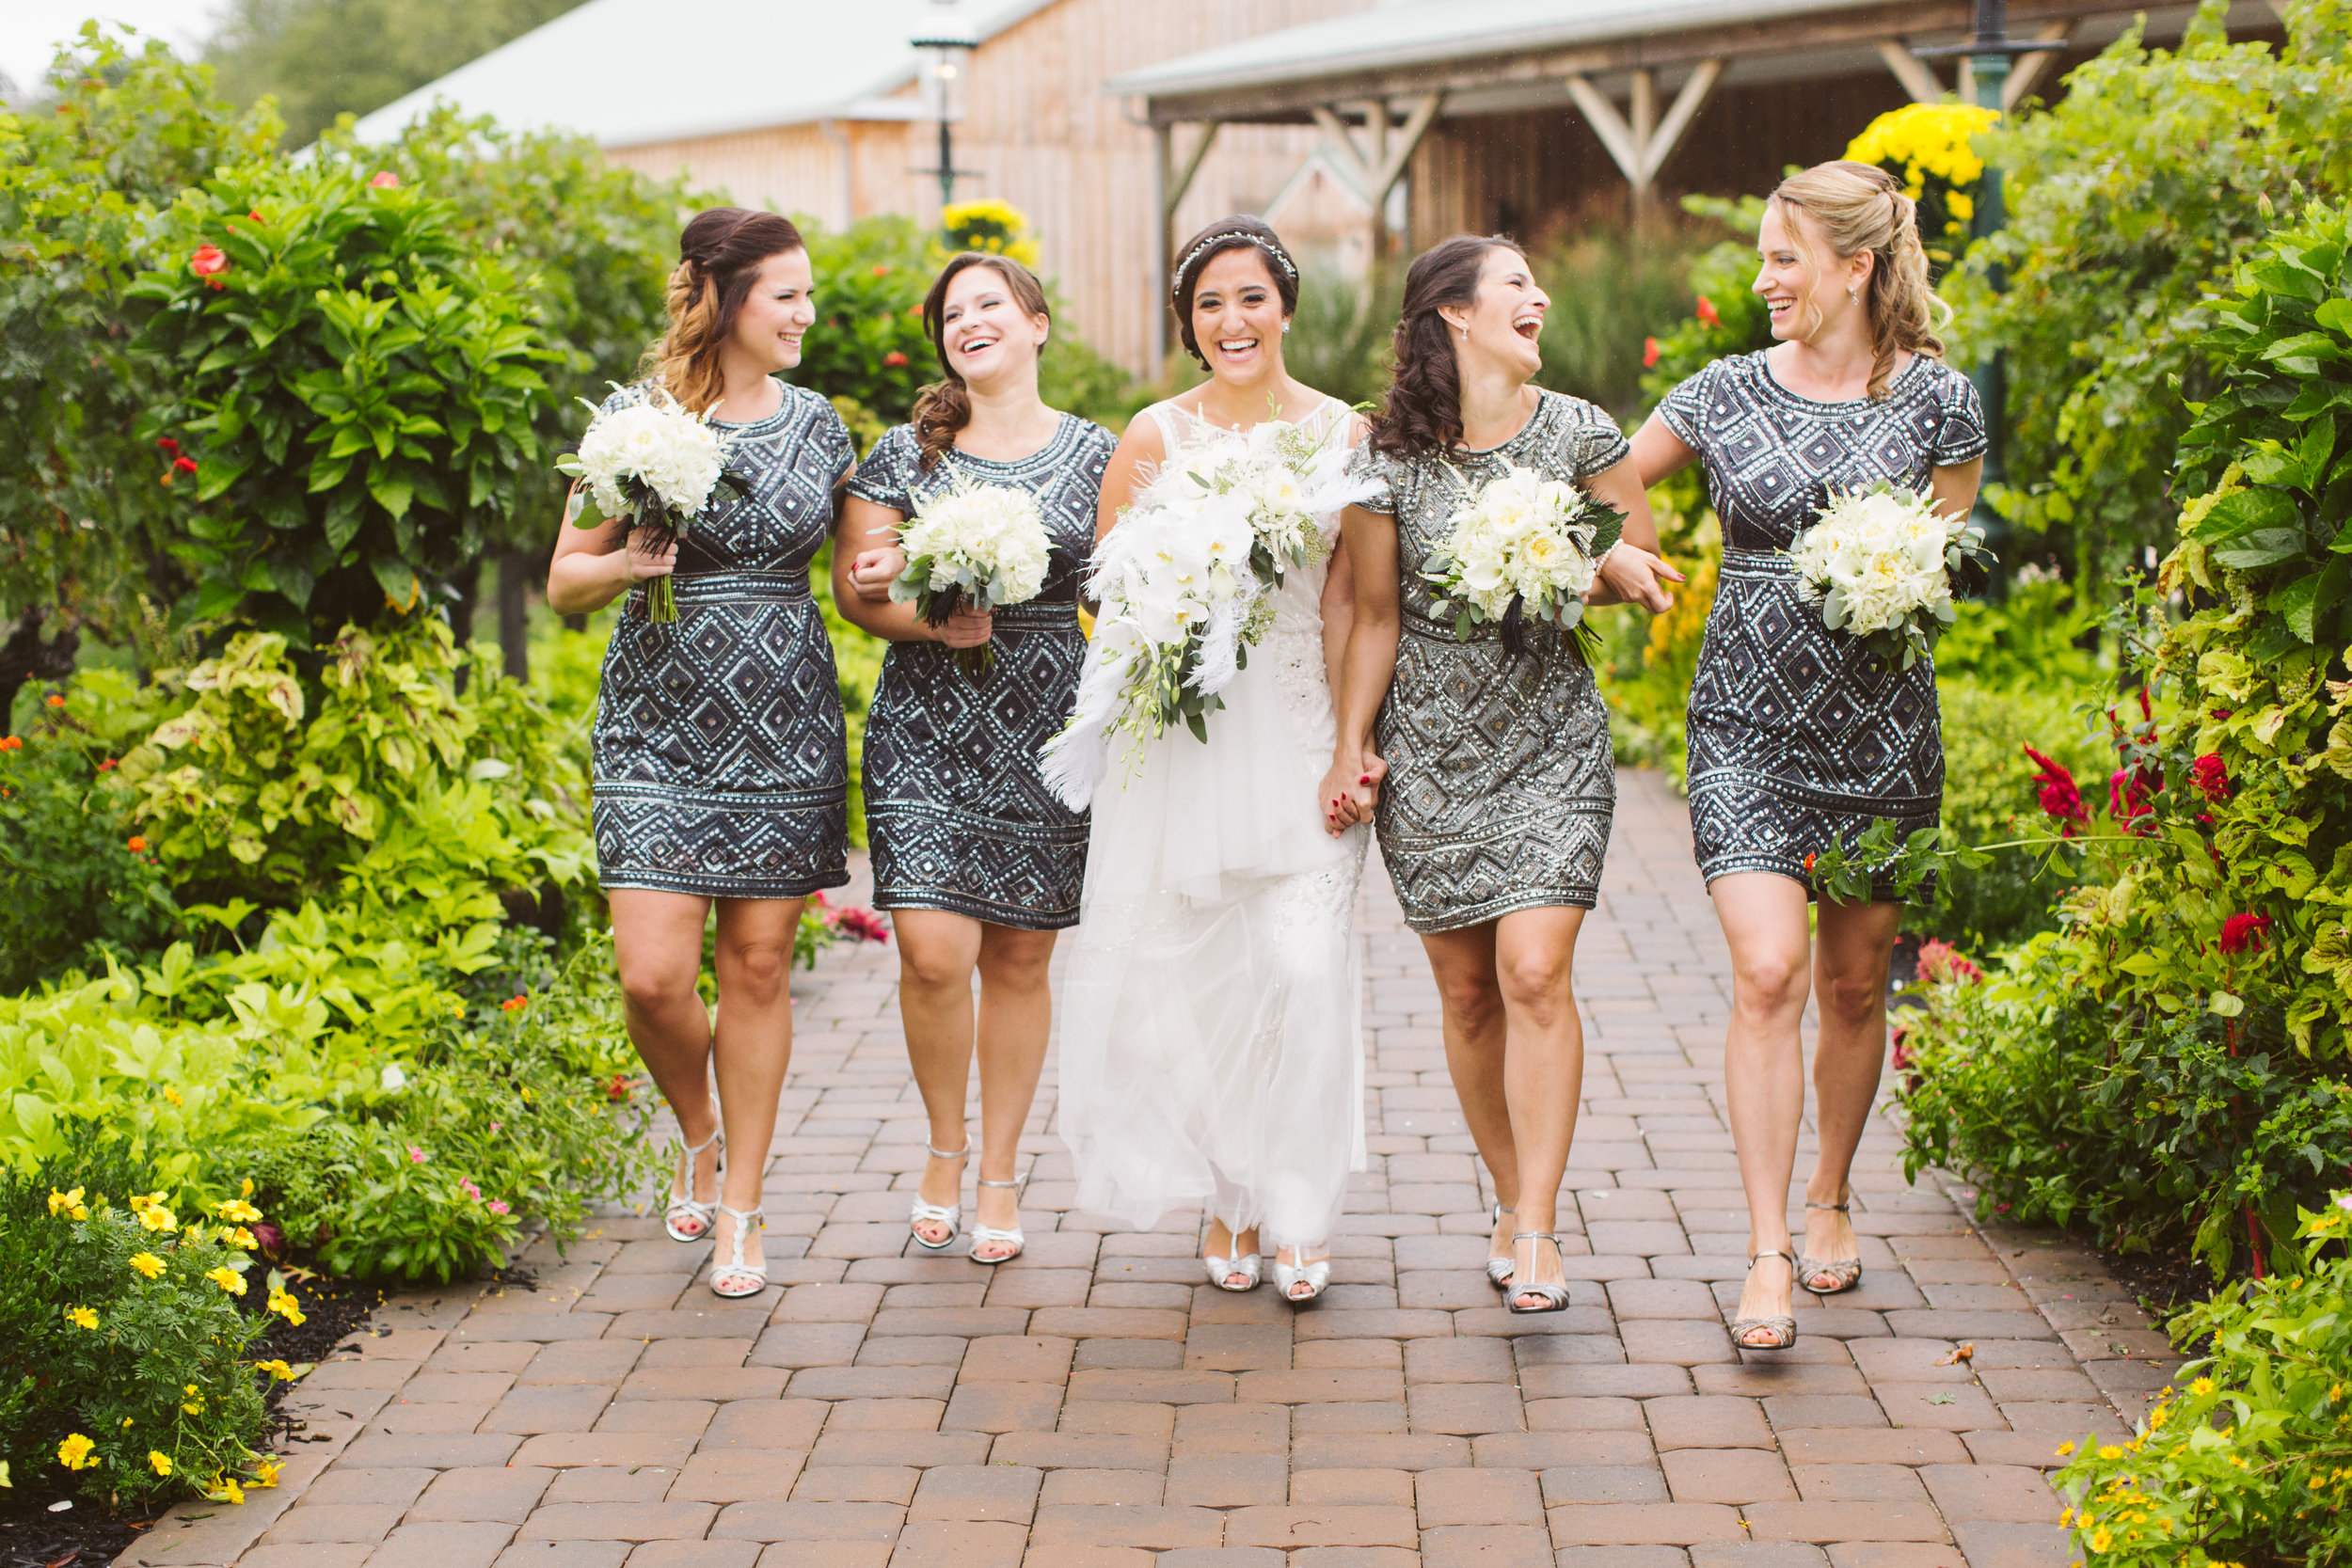 - Brush On Beauty was awesome! My bridesmaids all have different hair, from short and thin to long and thick. They were able to do a similar style on each girl and made them all look perfect. Their hair stayed looking the same all day, even with humid weather and crazy dancing! ~Julianna